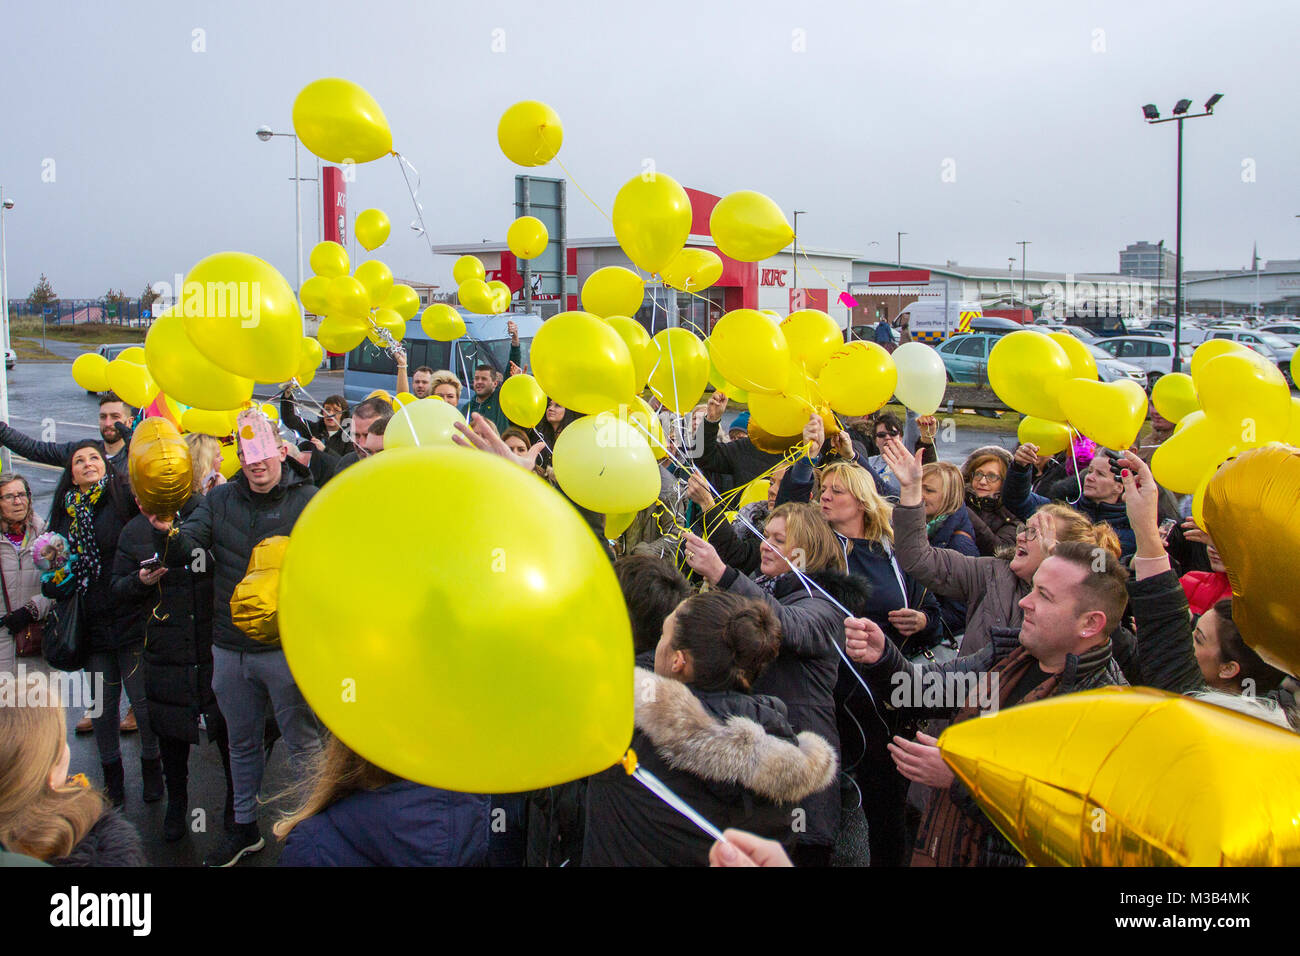 Southport, Merseyside, UK. 10/02/2018 Skies turned yellow today in a balloon release tribute to murdered Travel - Stock Image